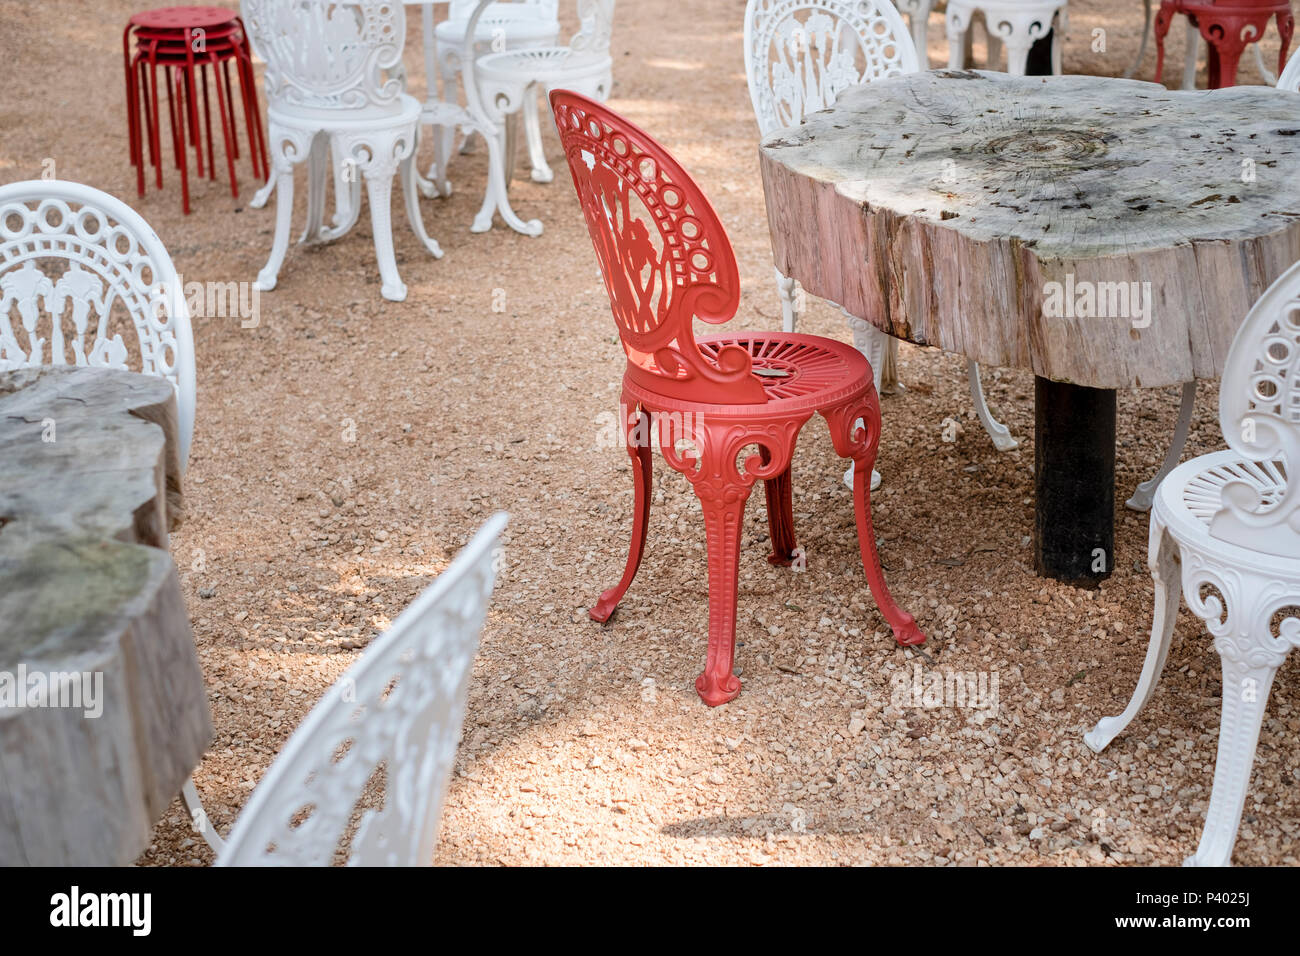 Picture of: Red And White Metal Chairs And Handmade Tables Made Out Of Cut Trees Outdoors Cozy Vintage Style Waiting For Guests In Summer Stock Photo Alamy